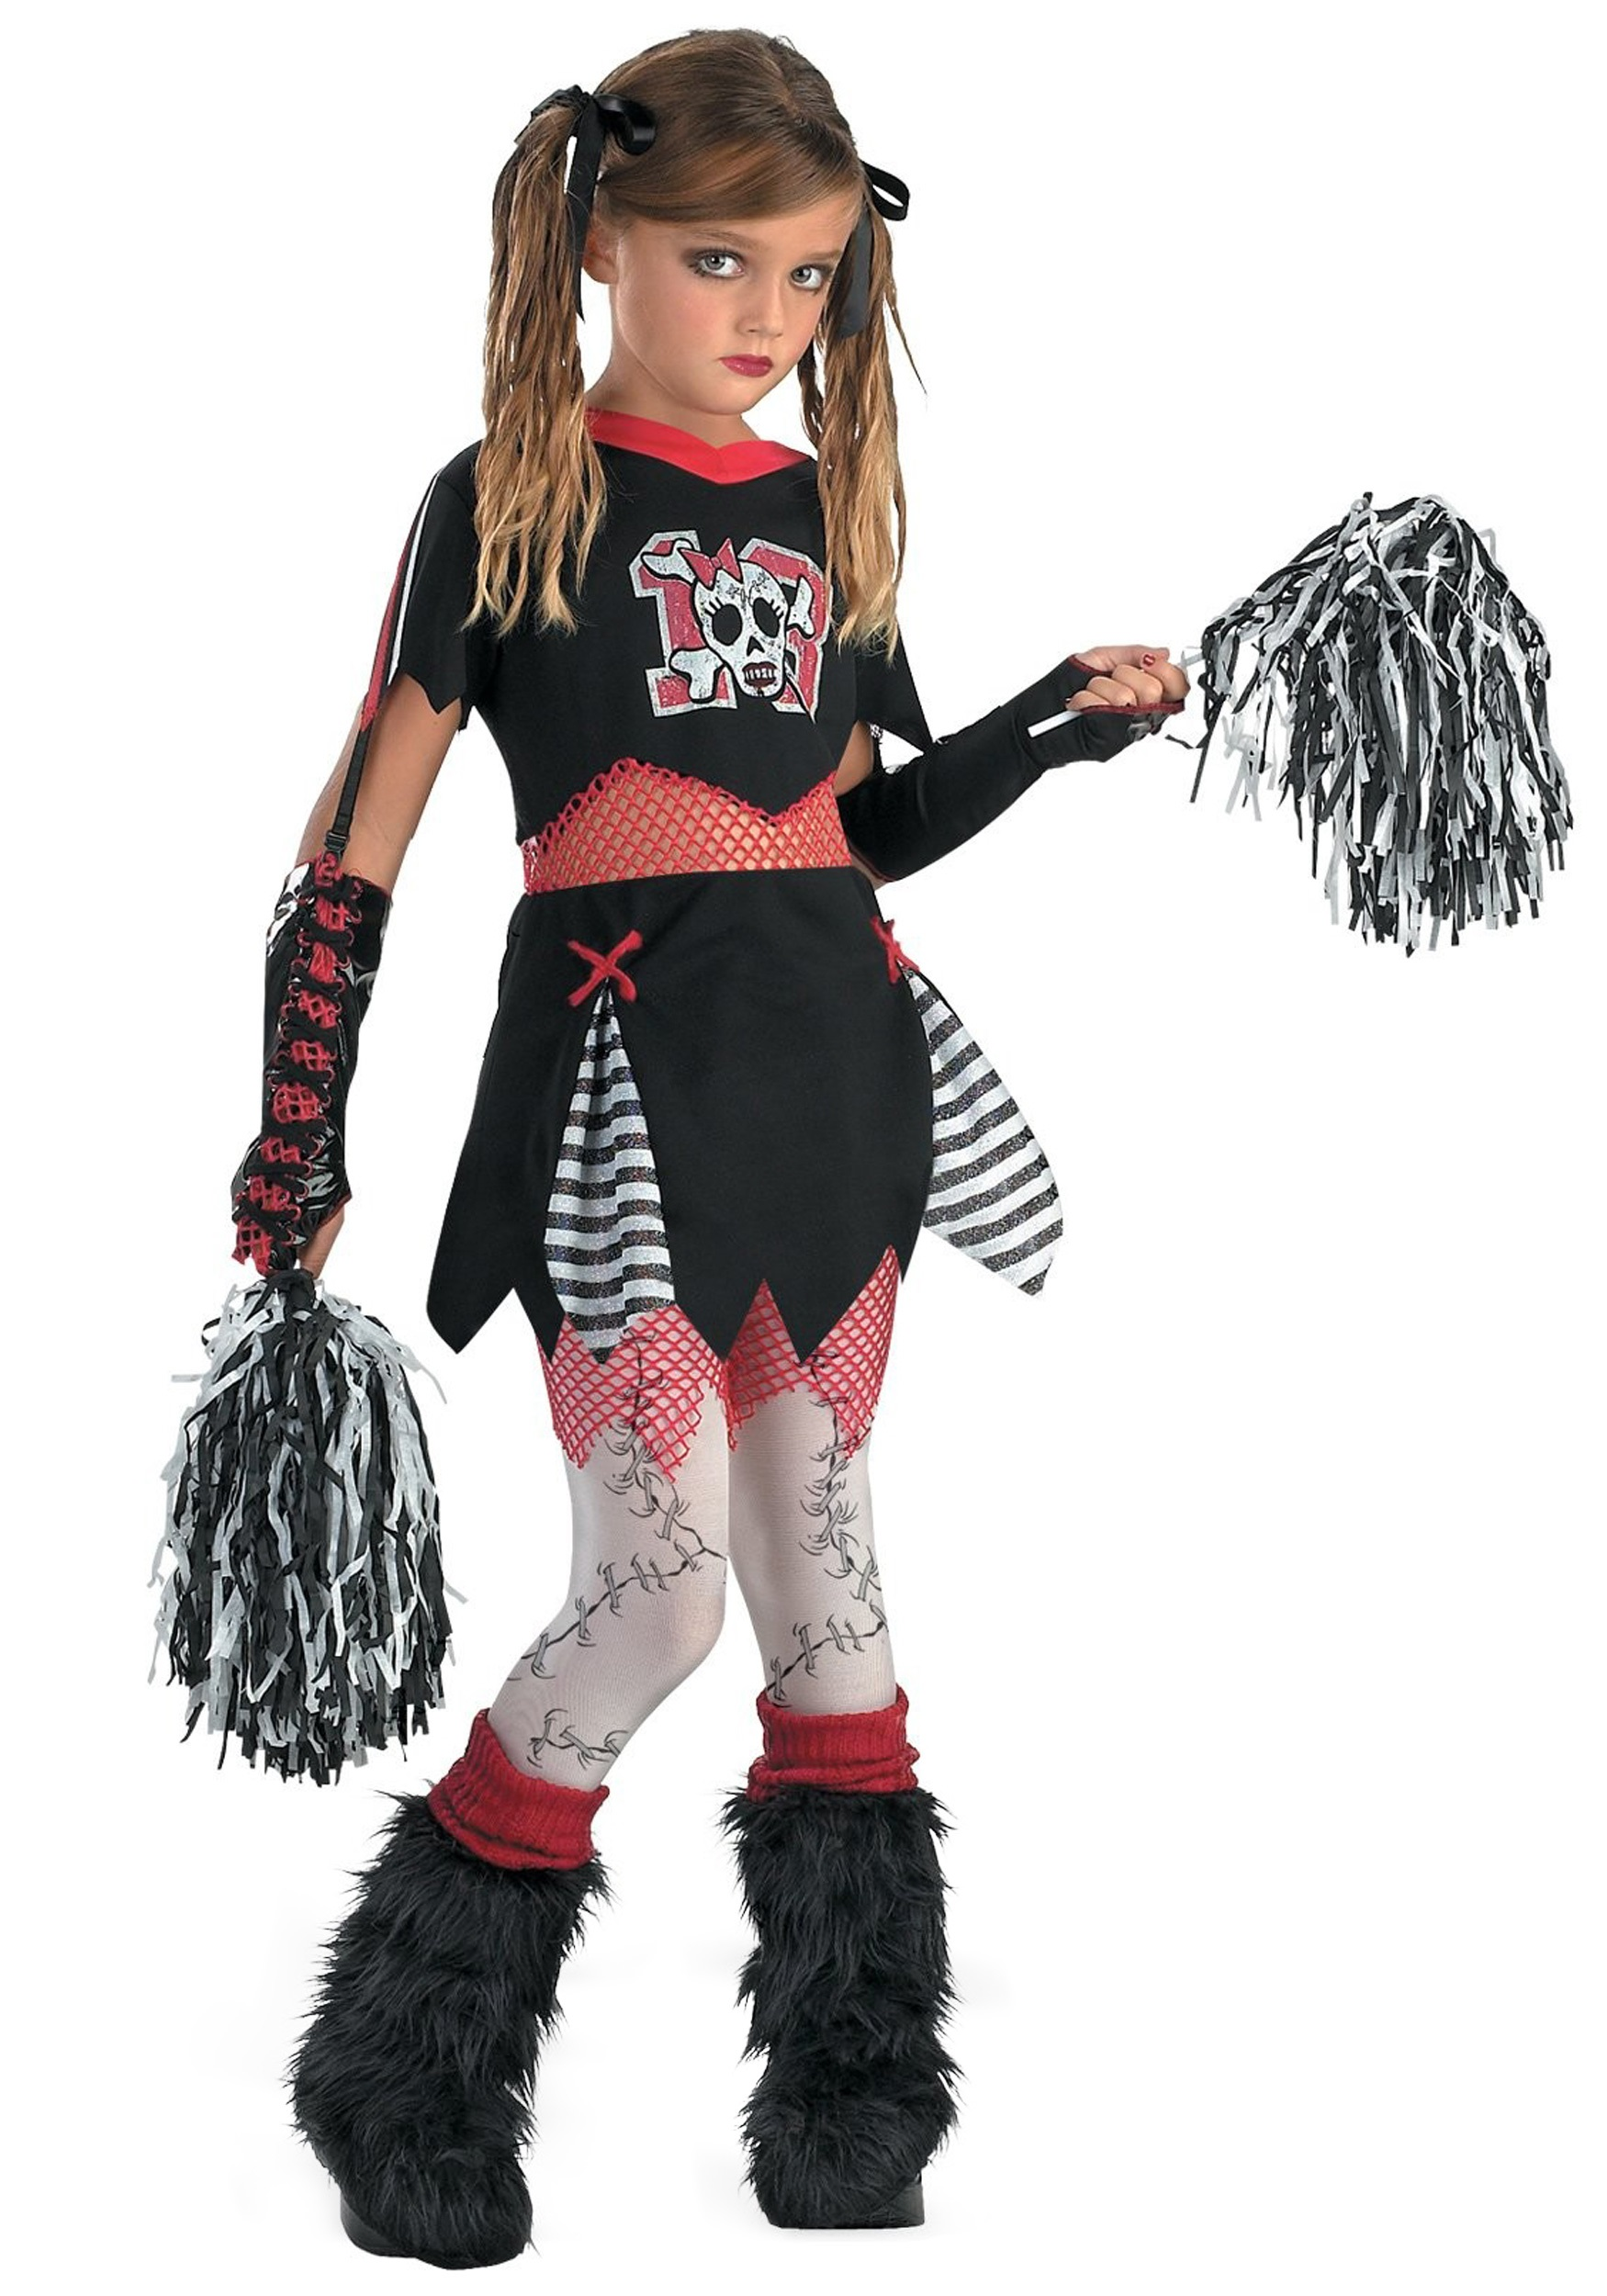 Costumes Kid Girls Cheerleaders